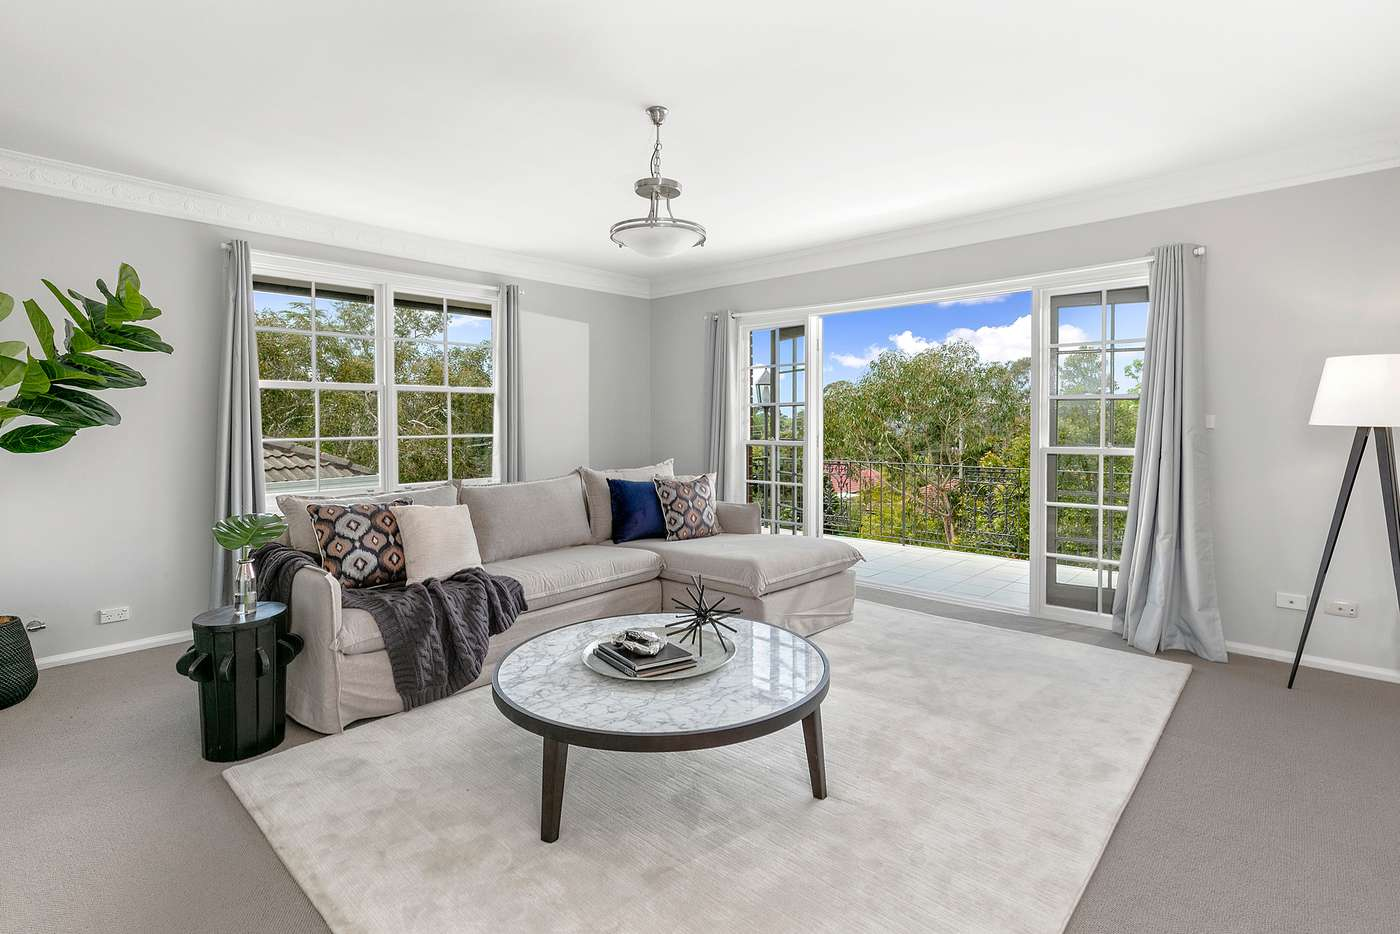 Main view of Homely house listing, 29 Dundilla Road, Frenchs Forest NSW 2086